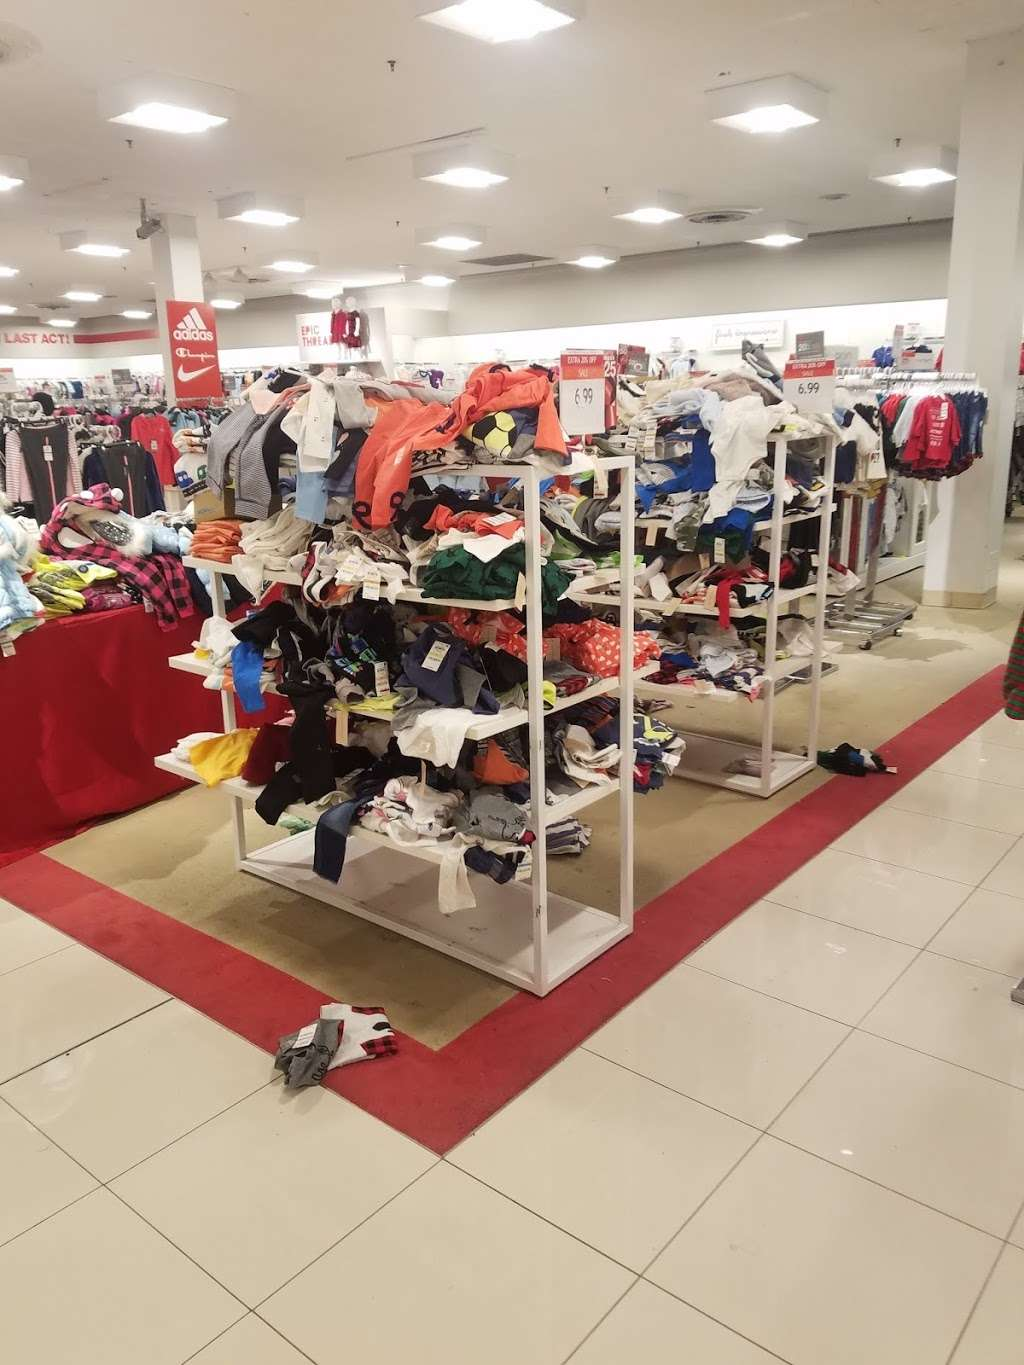 Macys Mens Store - clothing store  | Photo 3 of 9 | Address: 69 Green Acres Rd S, Valley Stream, NY 11581, USA | Phone: (516) 561-6100